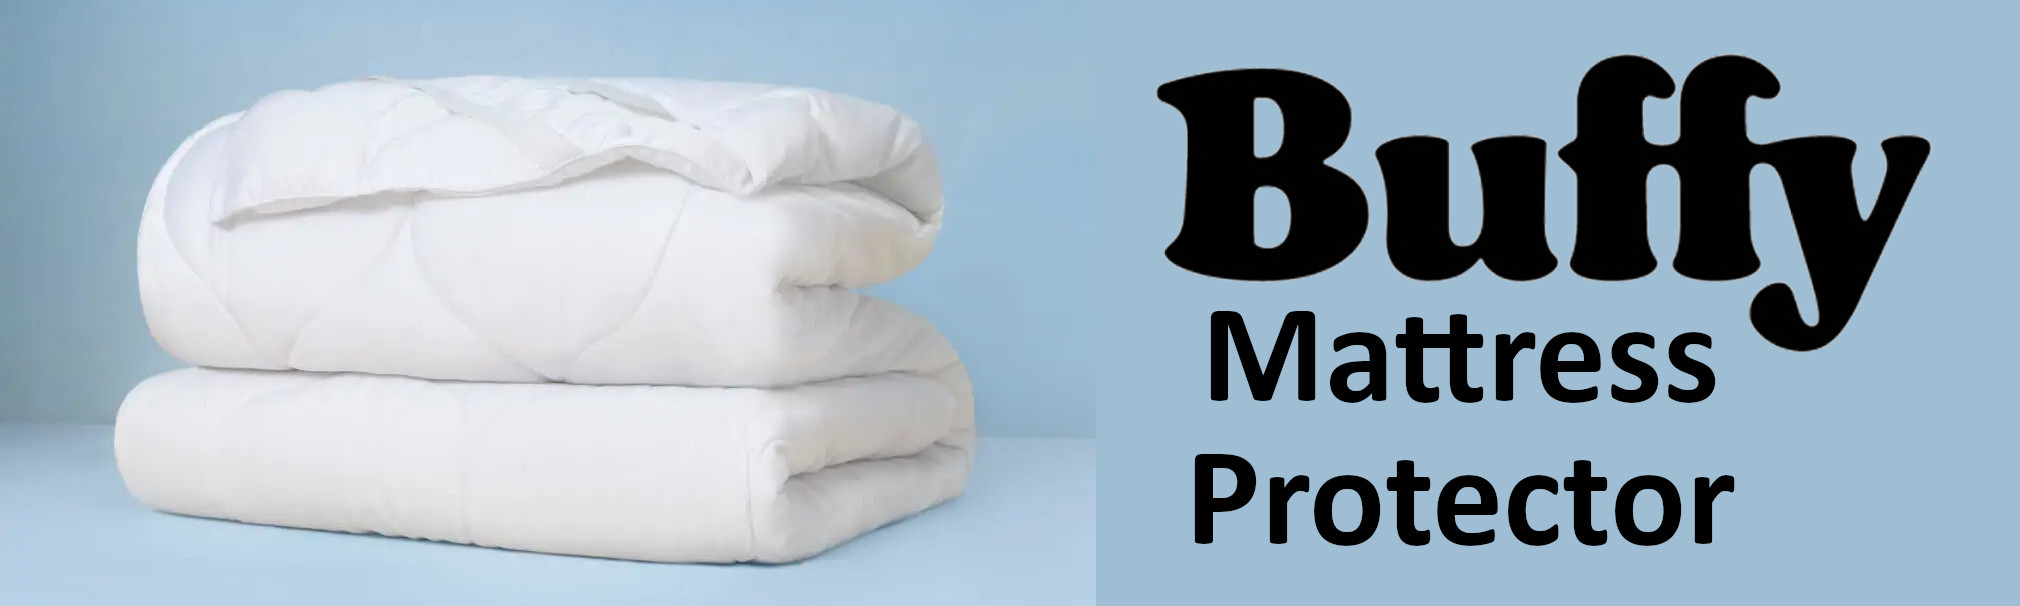 check out the new buffy mattress protector